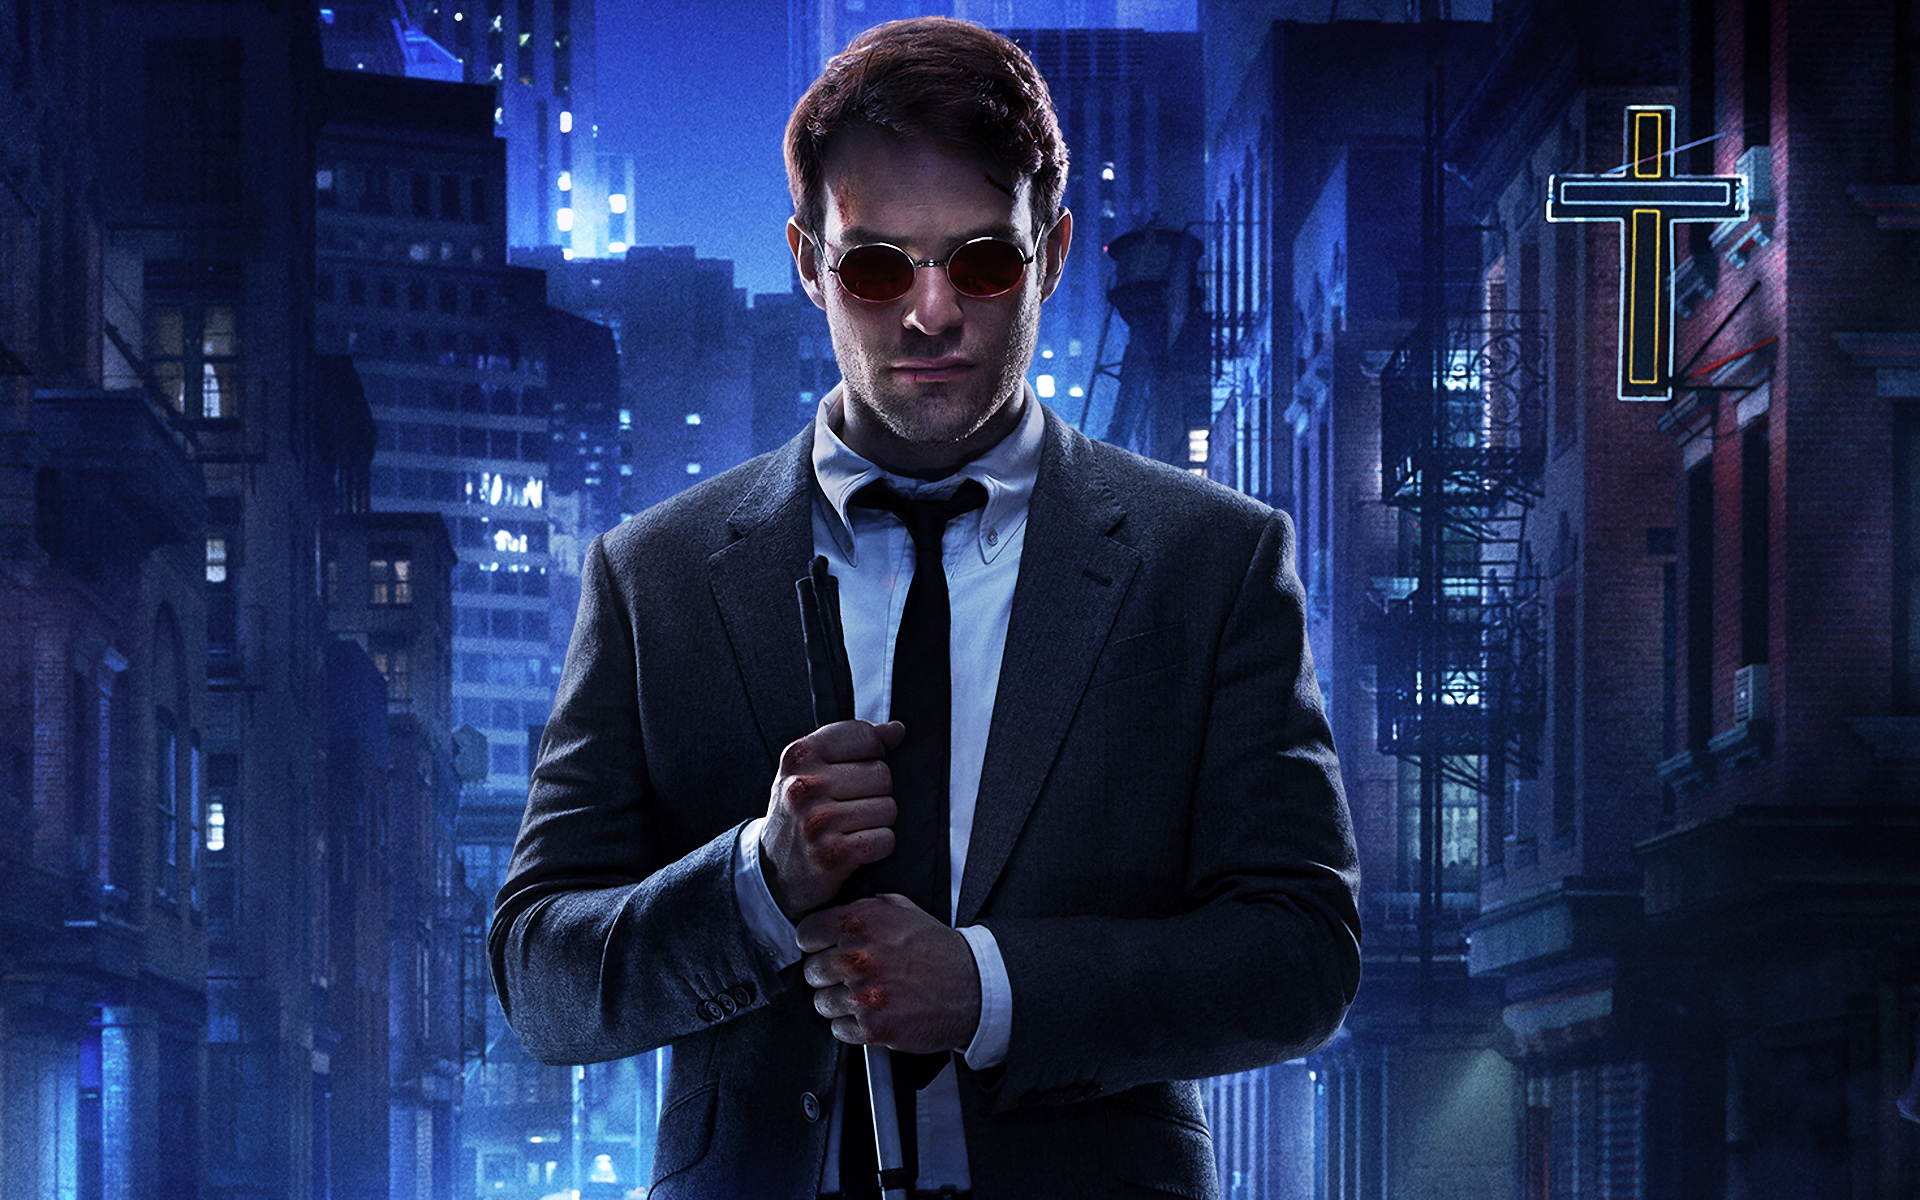 One of Marvel Comics most popular characters comes to the screen for the first time in this scifi actionthriller Matthew Murdock Ben Affleck is a lawyer whose